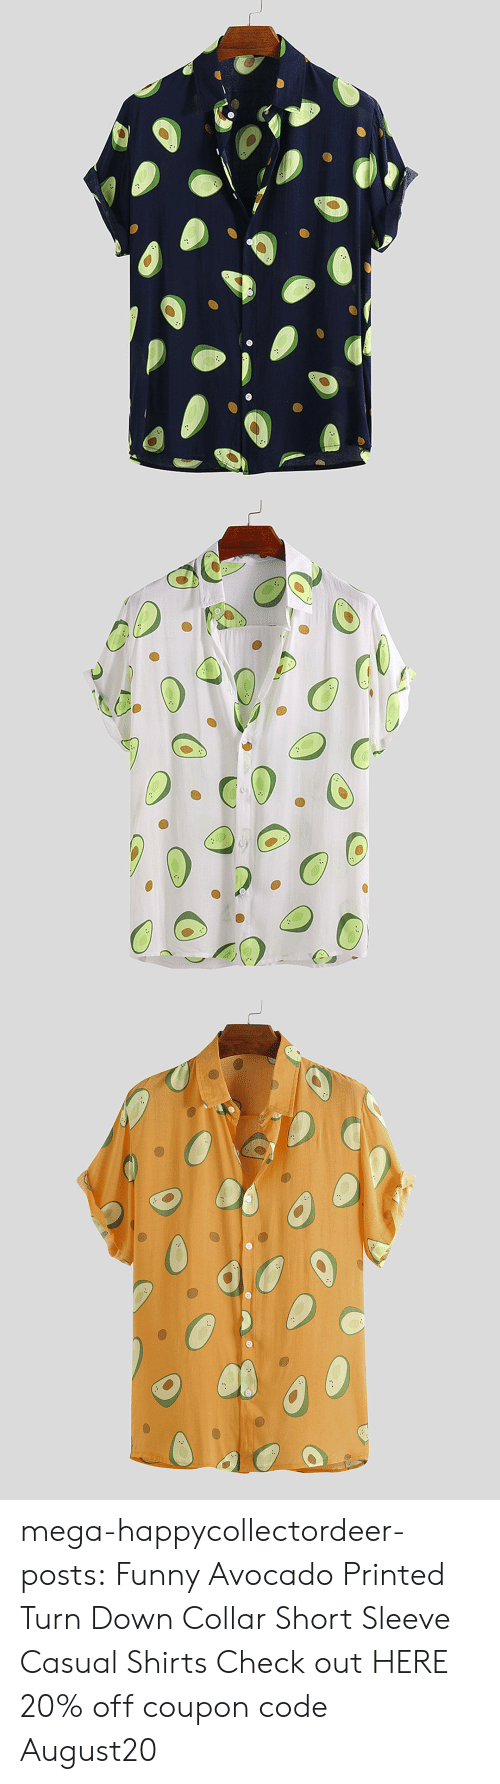 Avocado: mega-happycollectordeer-posts:   Funny Avocado Printed Turn Down Collar Short Sleeve Casual Shirts   Check out HERE 20% off coupon code:August20